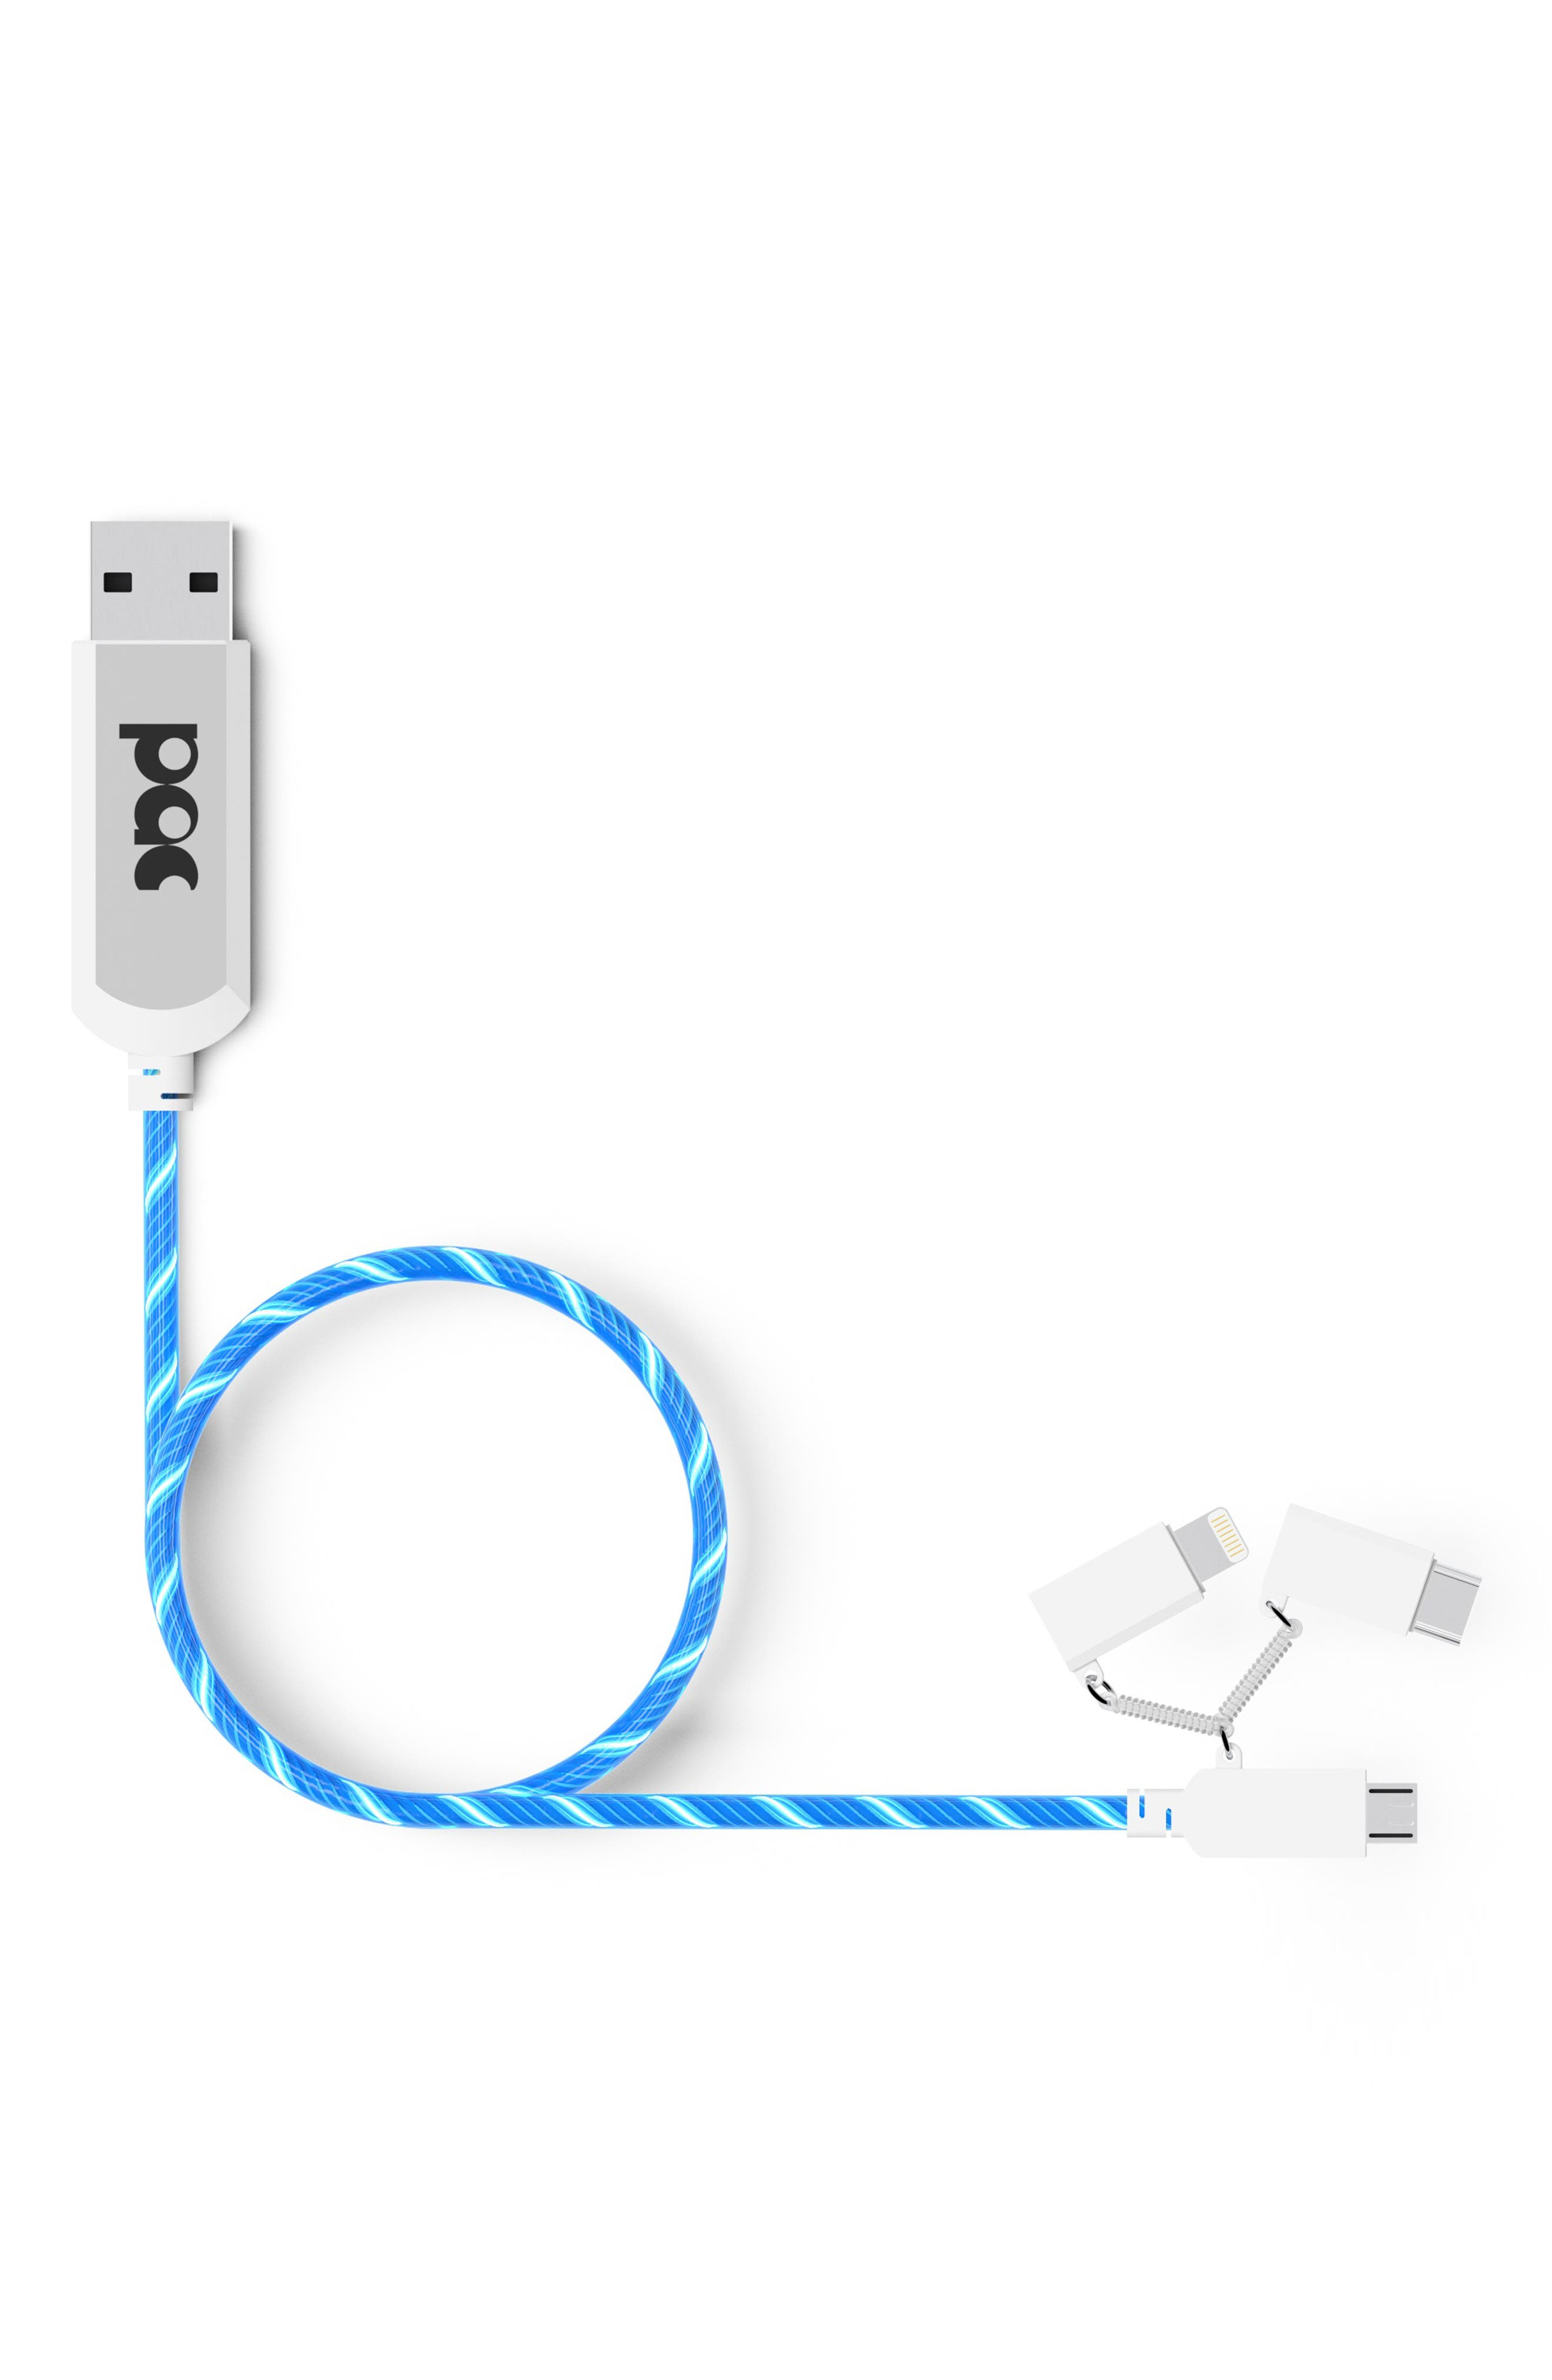 PAC TECH Power Flow Charge and Sync Cable, Main, color, BLUE